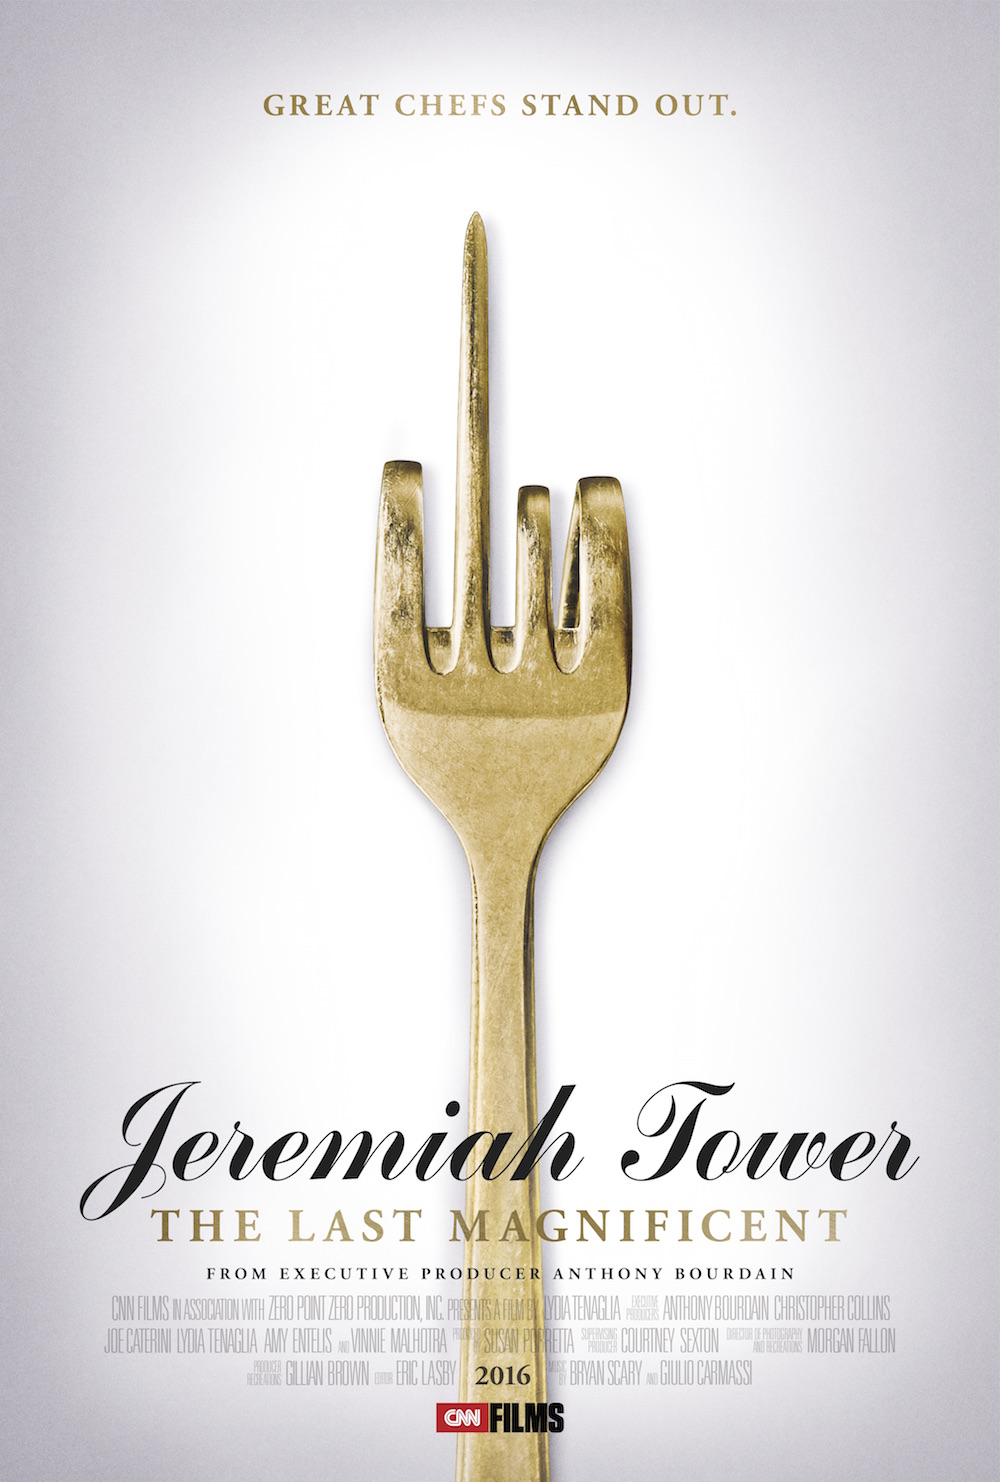 jeremiah-tower-the-last-magnificent-blog0417.jpg